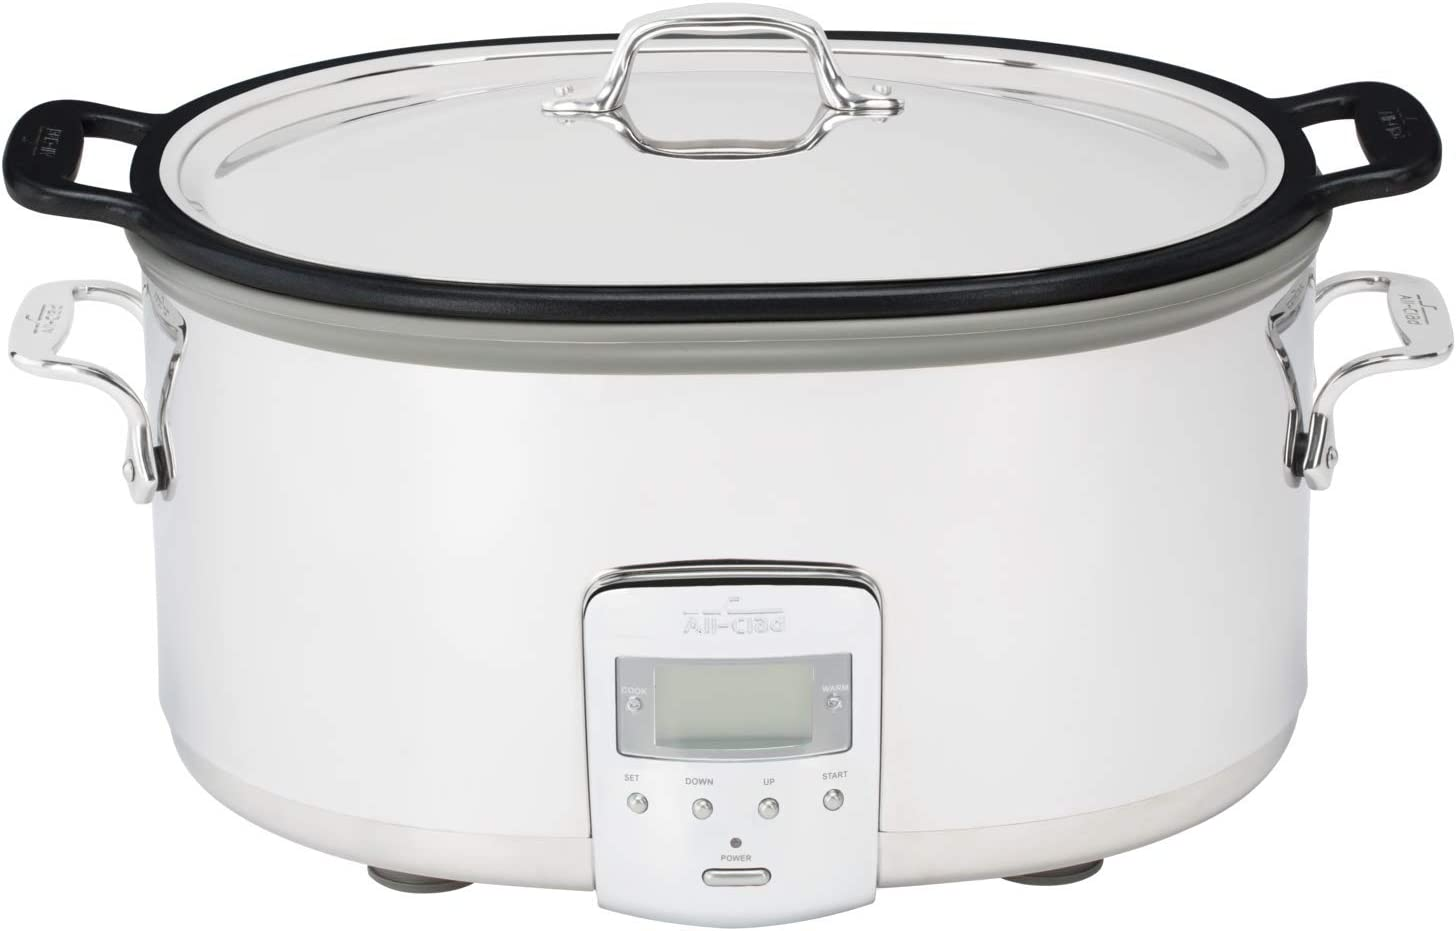 All-Clad SD700350 Slow Cooker, 7 Quart, Silver